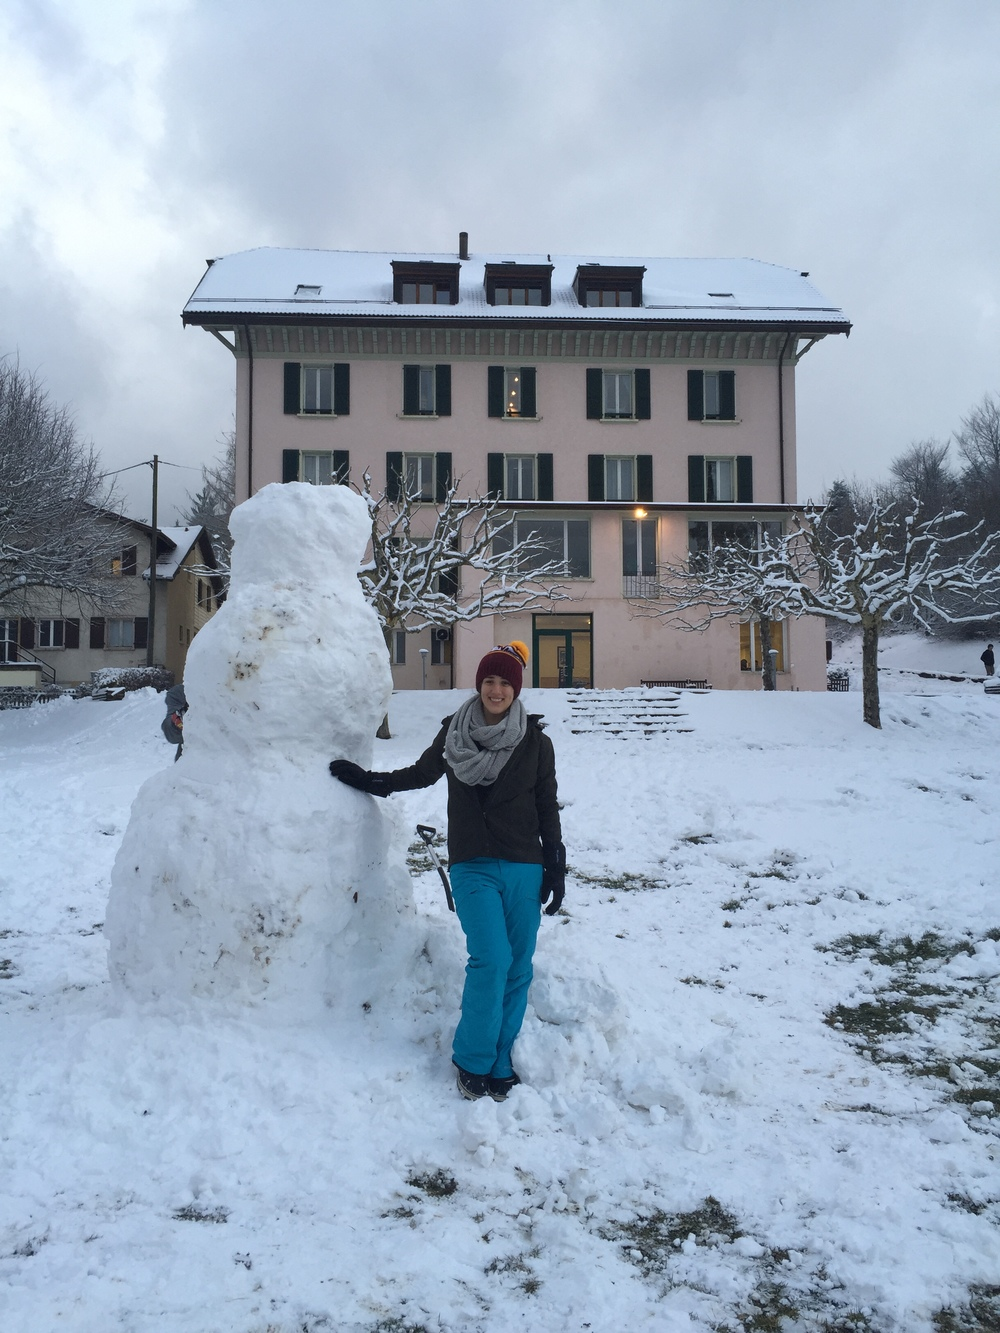 The 3 meter (9ft) snowman I built with help.